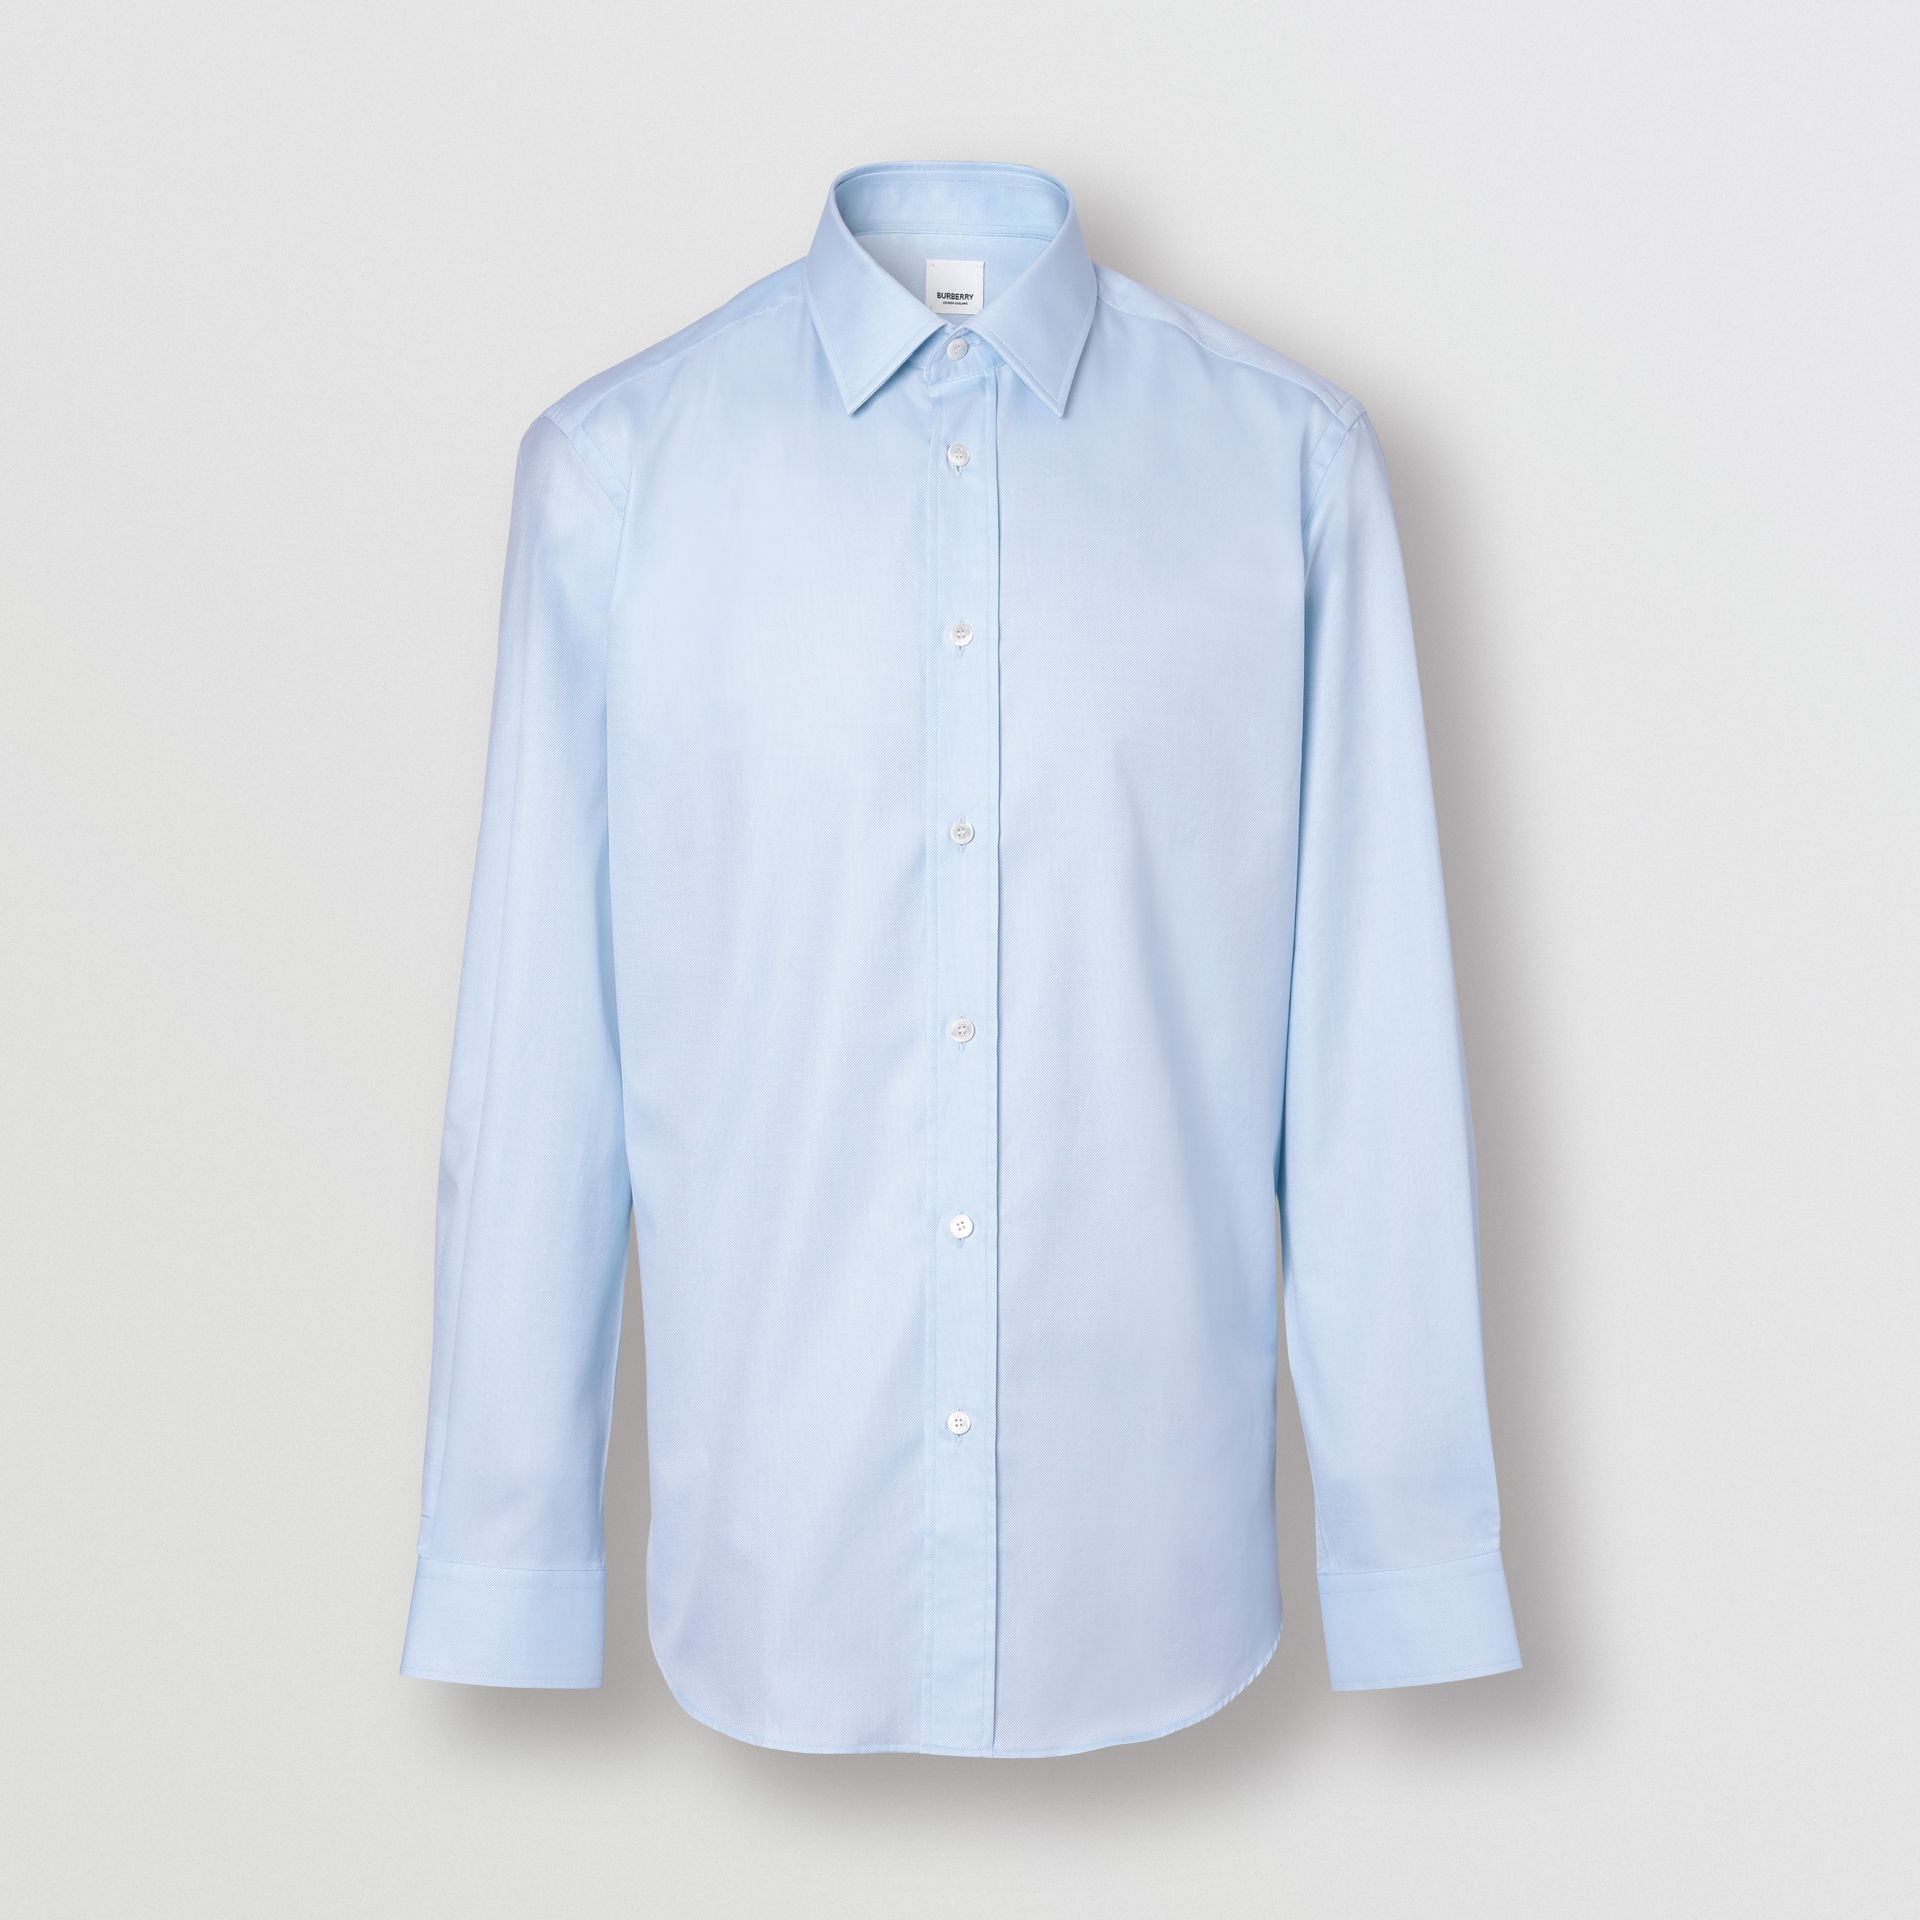 Slim Fit Monogram Motif Cotton Poplin Shirt in Pale Blue - Men | Burberry Singapore - gallery image 3